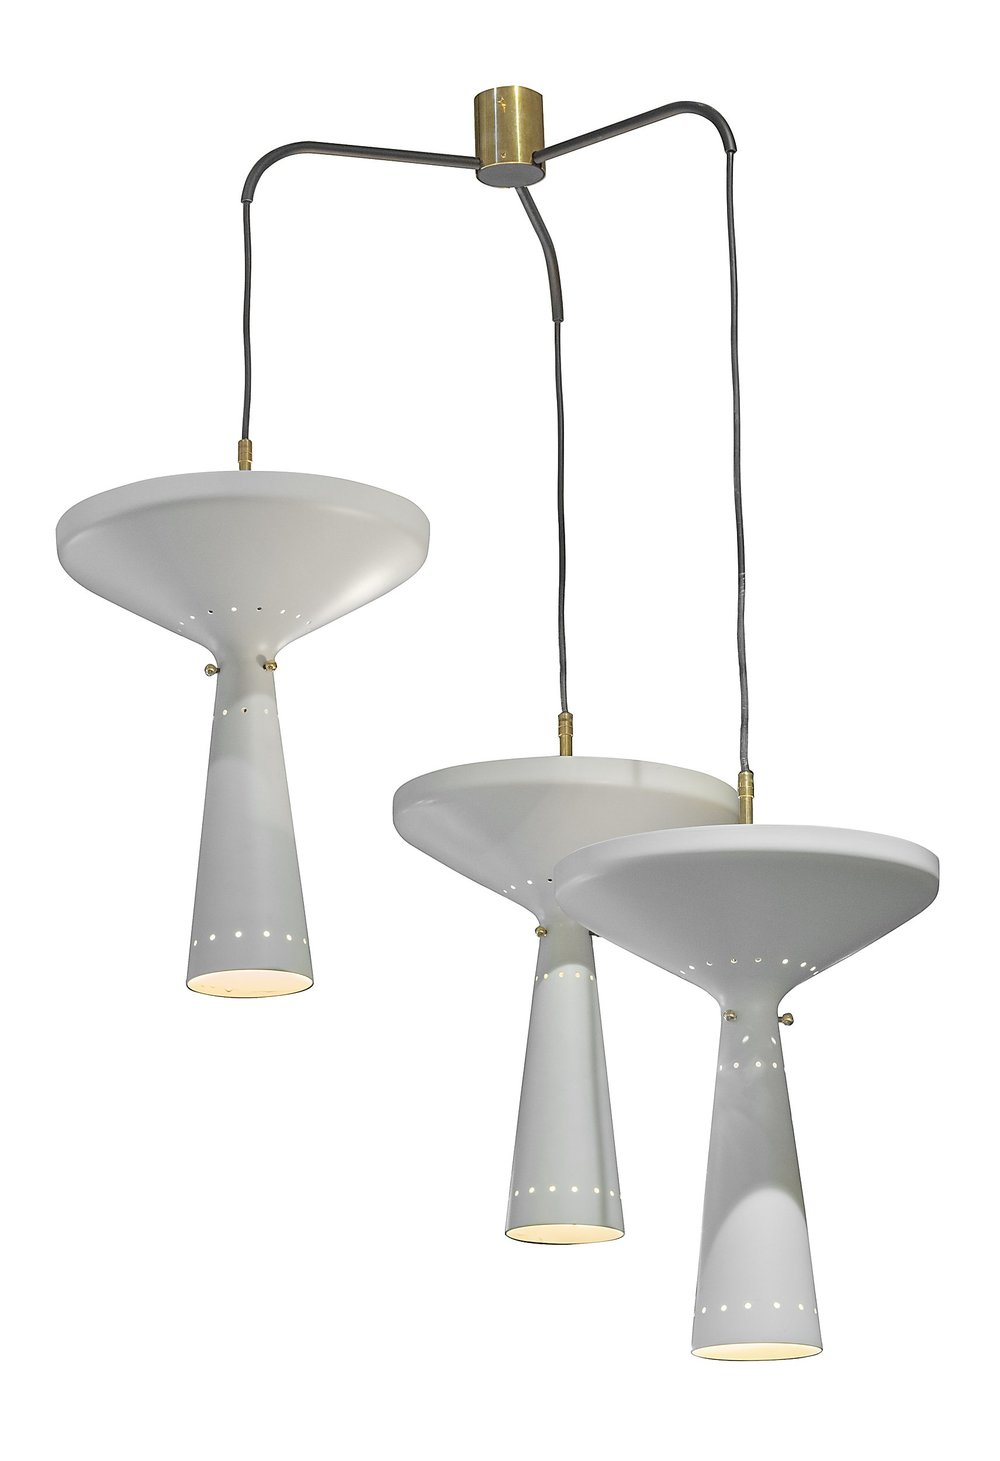 Three_Hanging_Light_Pendants_A_org.jpg